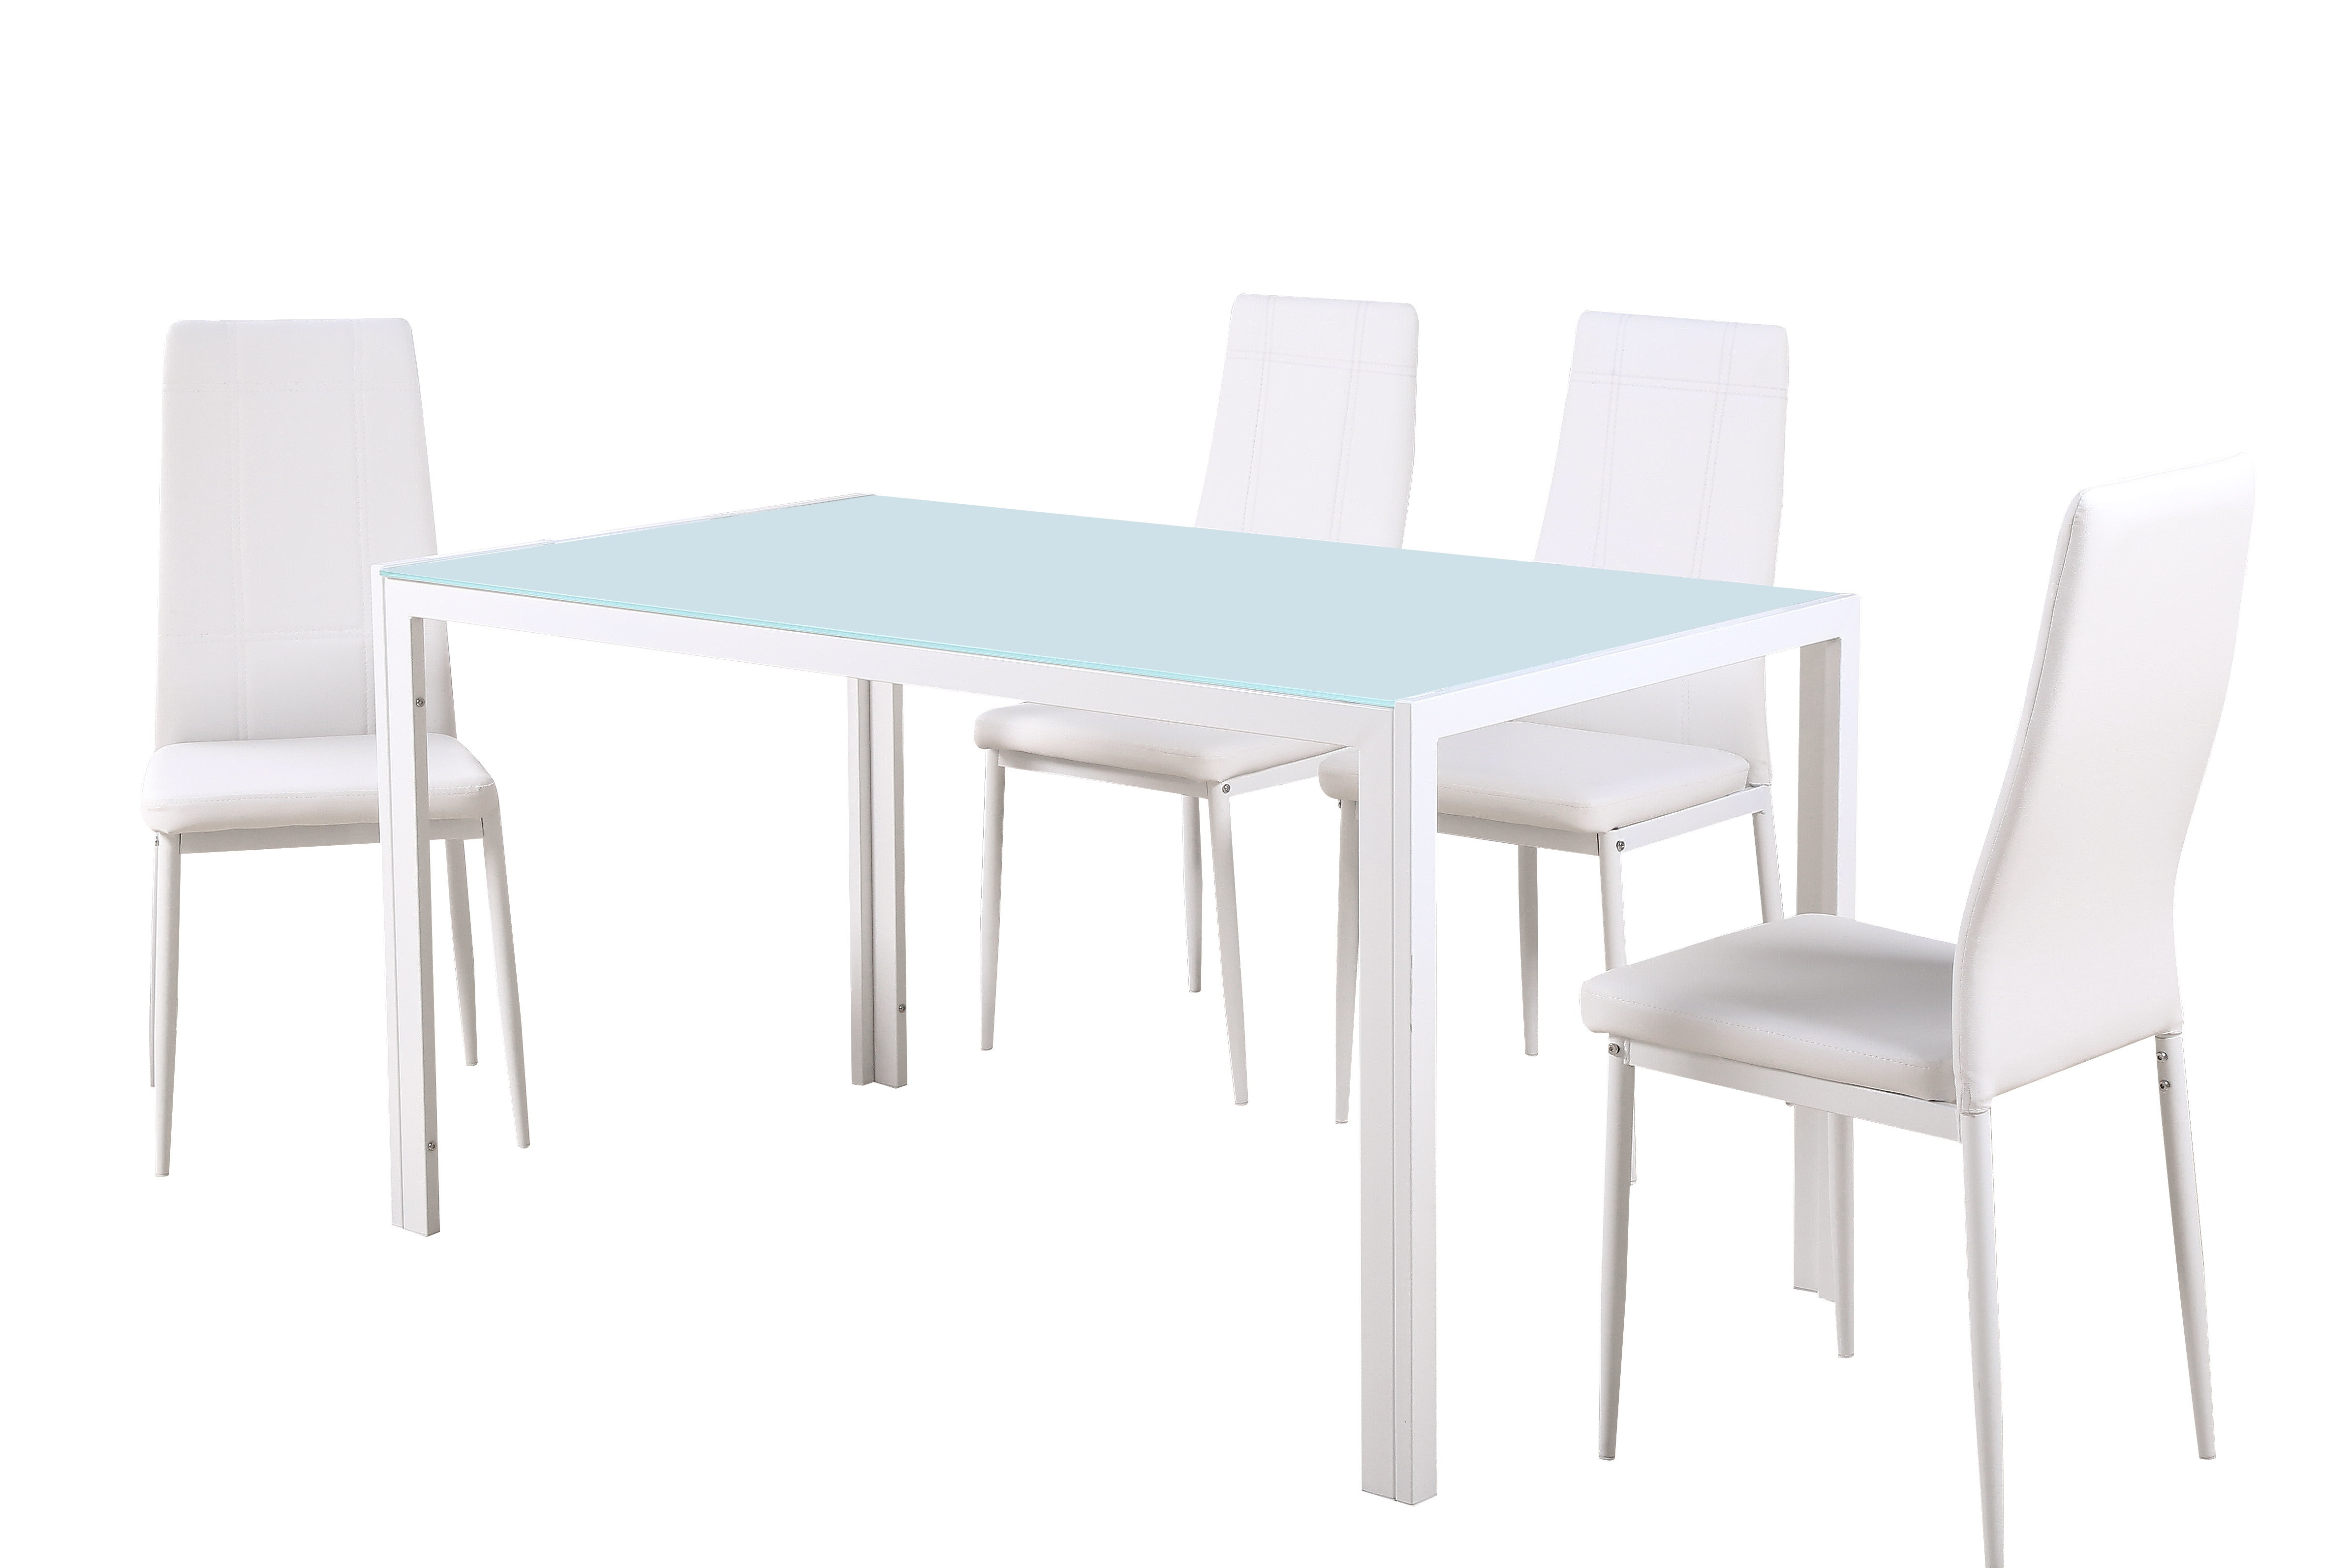 Maynard 5 Piece Dining Set In 2018 Travon 5 Piece Dining Sets (View 12 of 20)